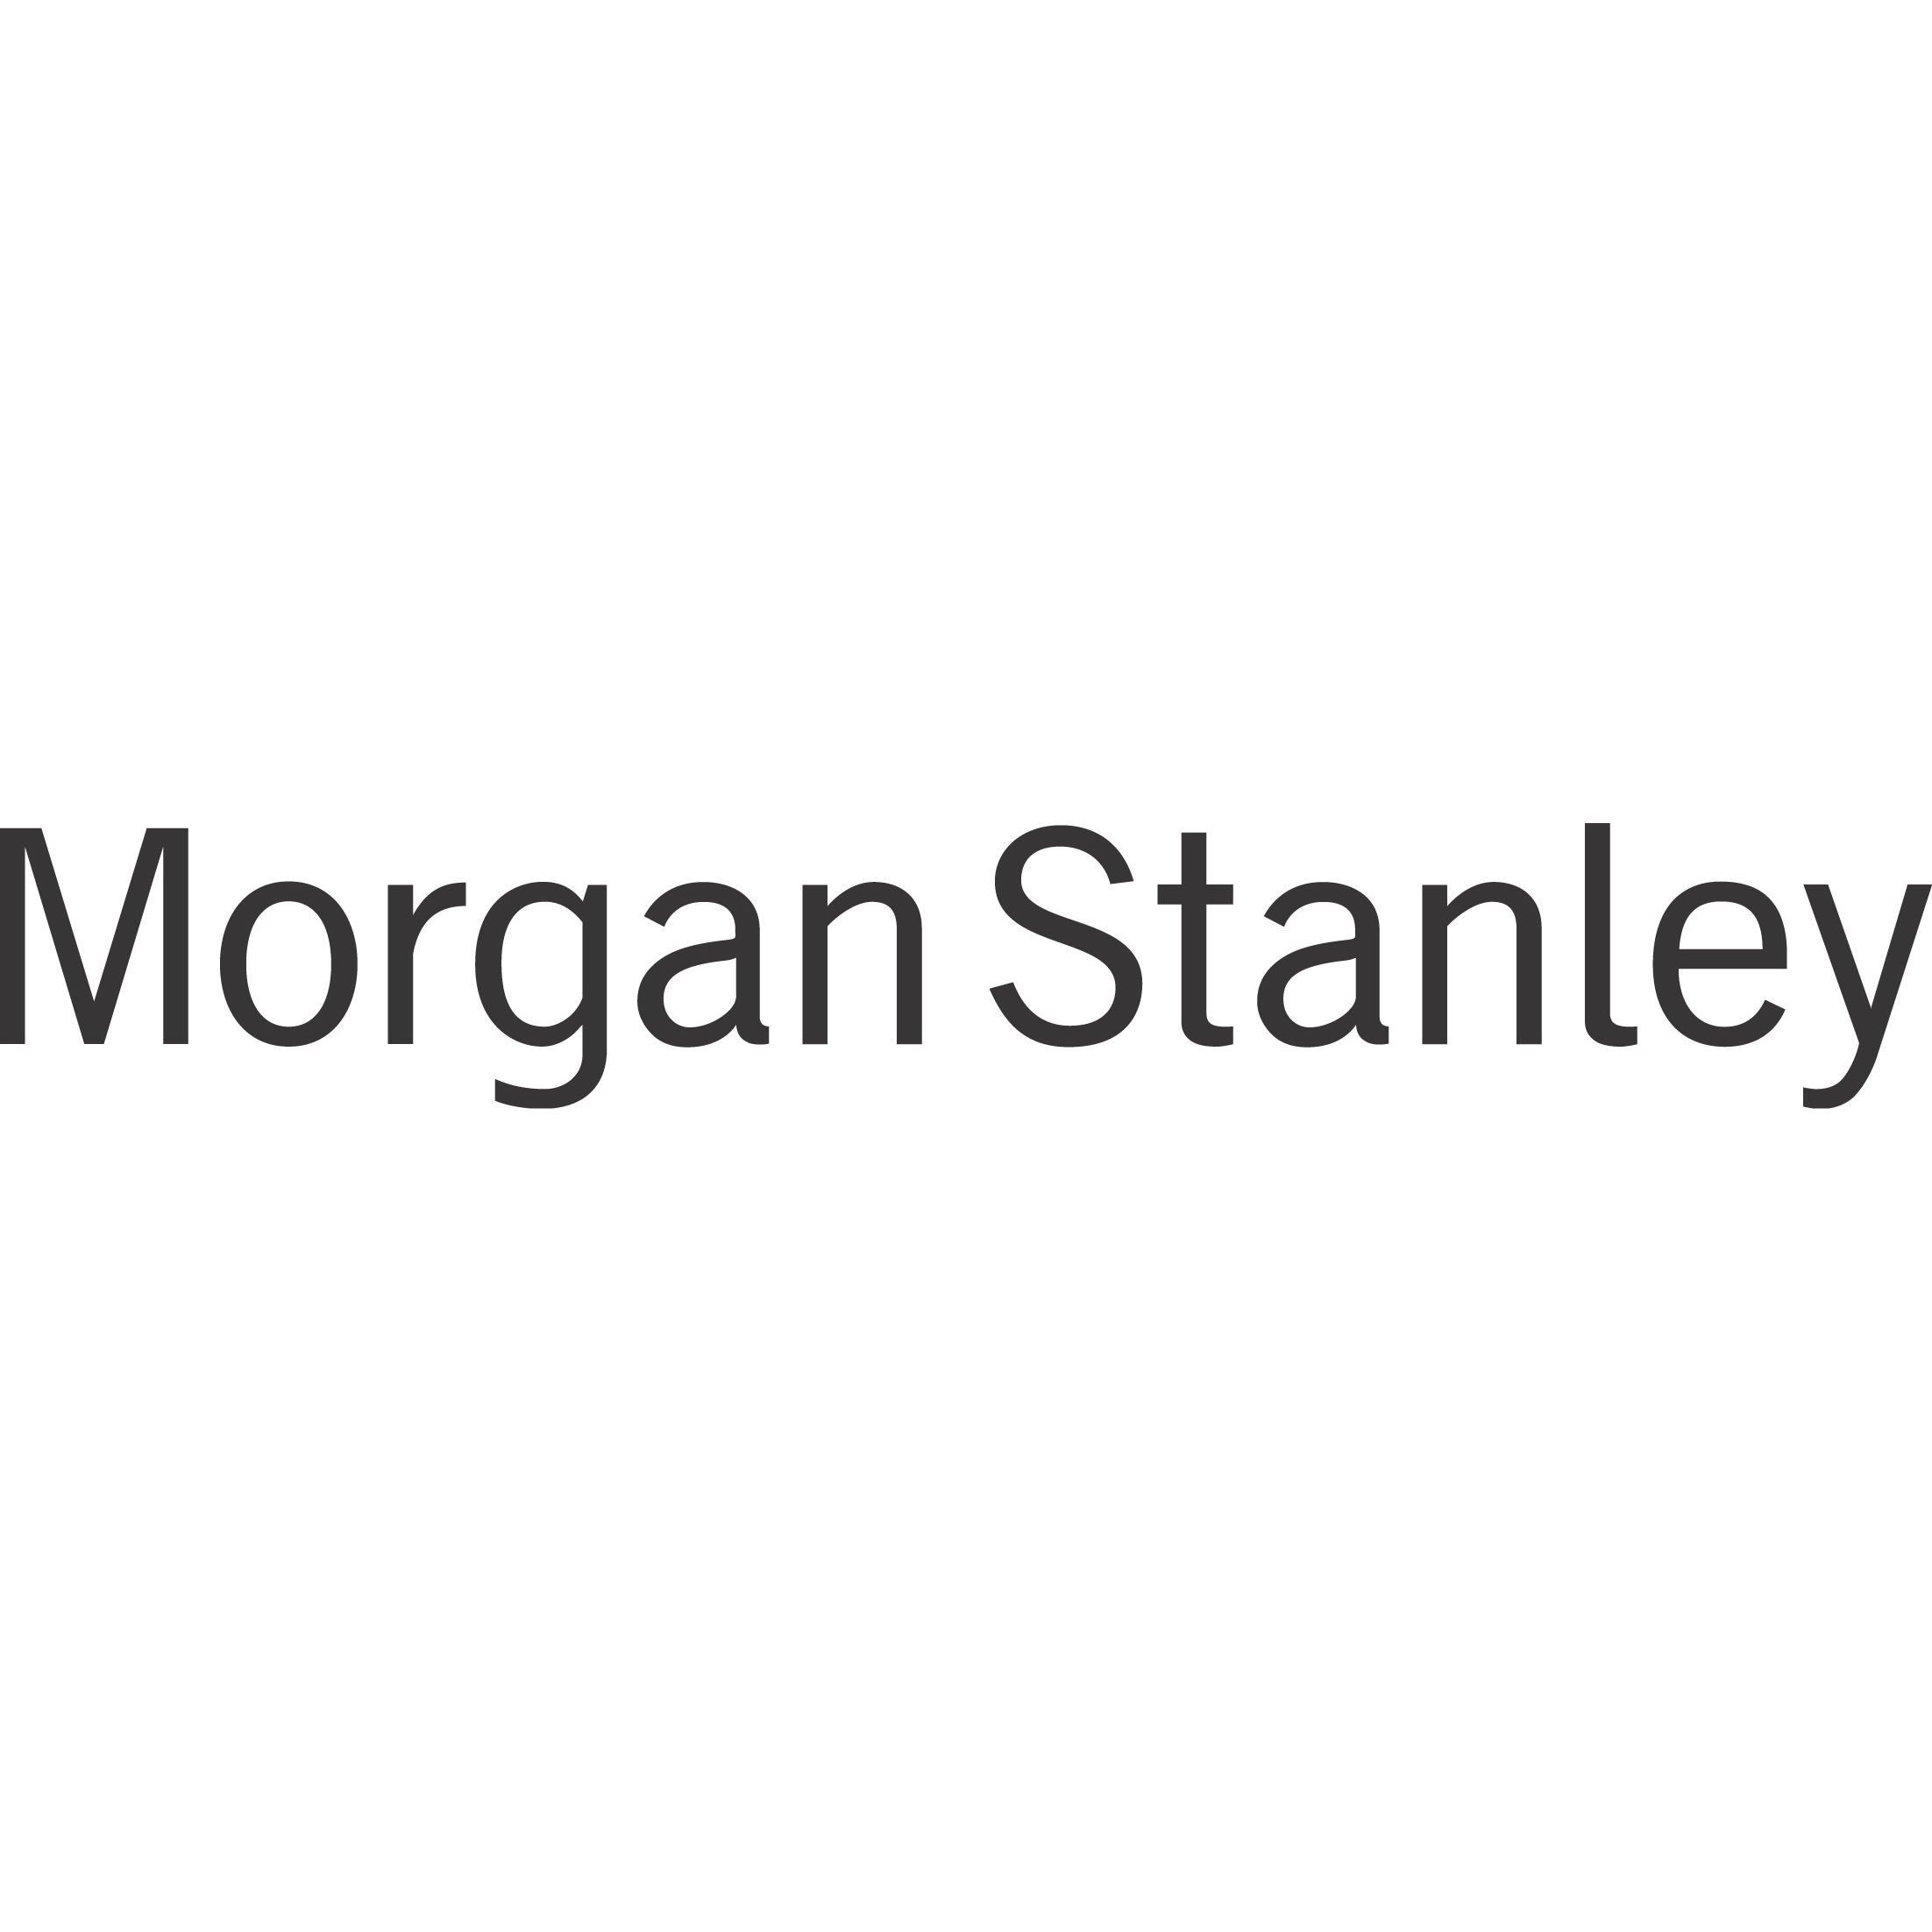 Scott Maskel - Morgan Stanley | Financial Advisor in Indianapolis,Indiana